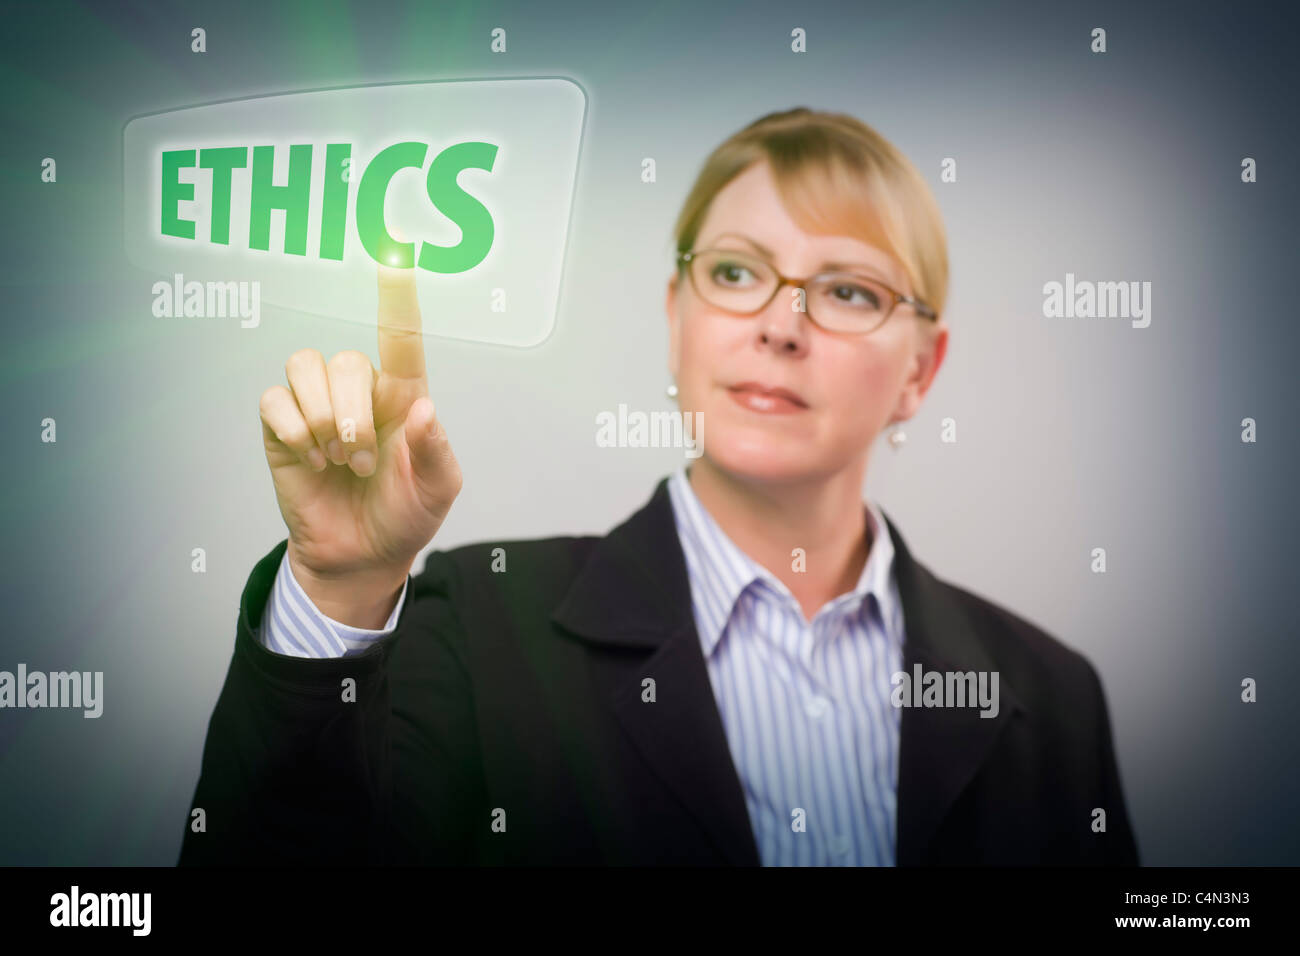 Attractive Blonde Businesswoman Pushing Ethics Button on an Interactive Touch Screen. - Stock Image